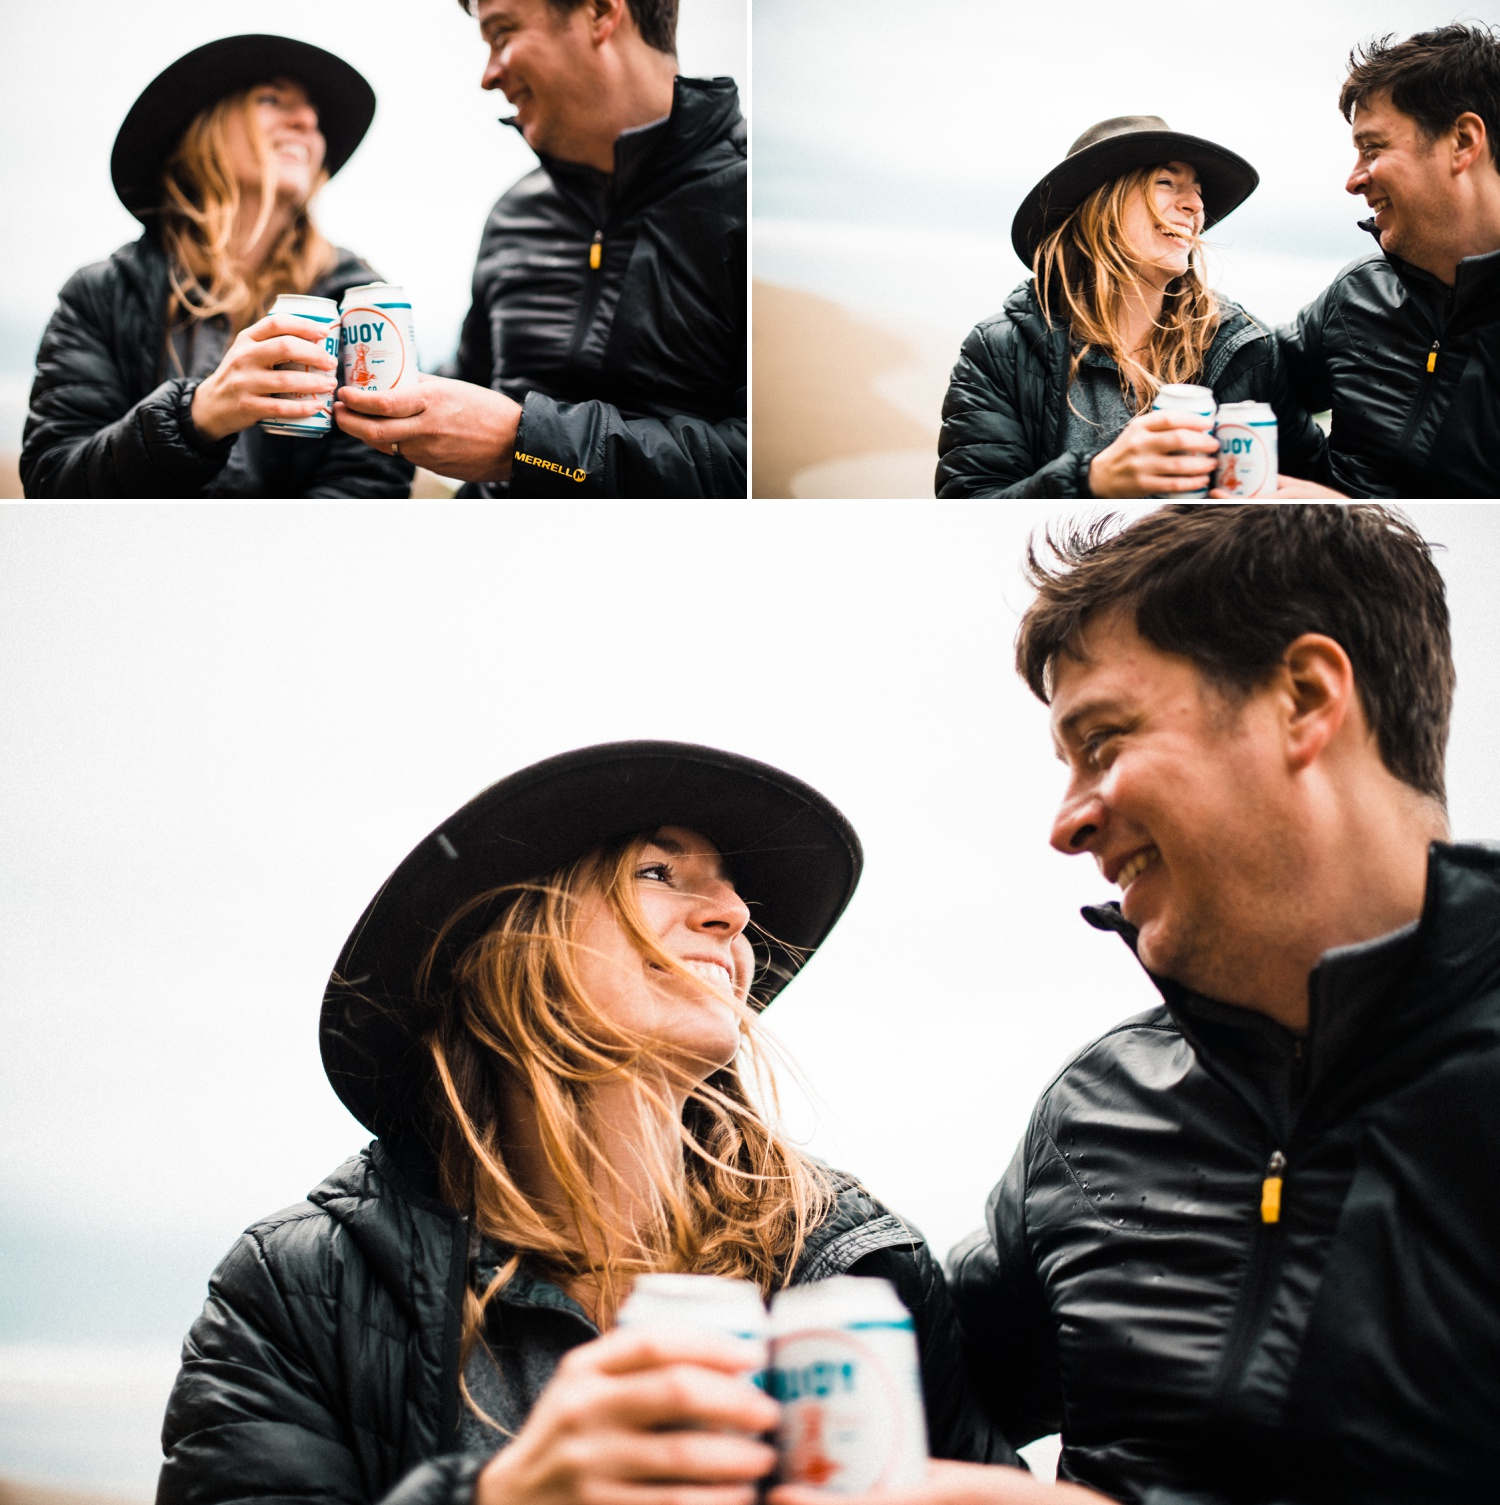 Hug_Point_Engagement_Oregon_Coast_The_Foxes_Photography_023.jpg